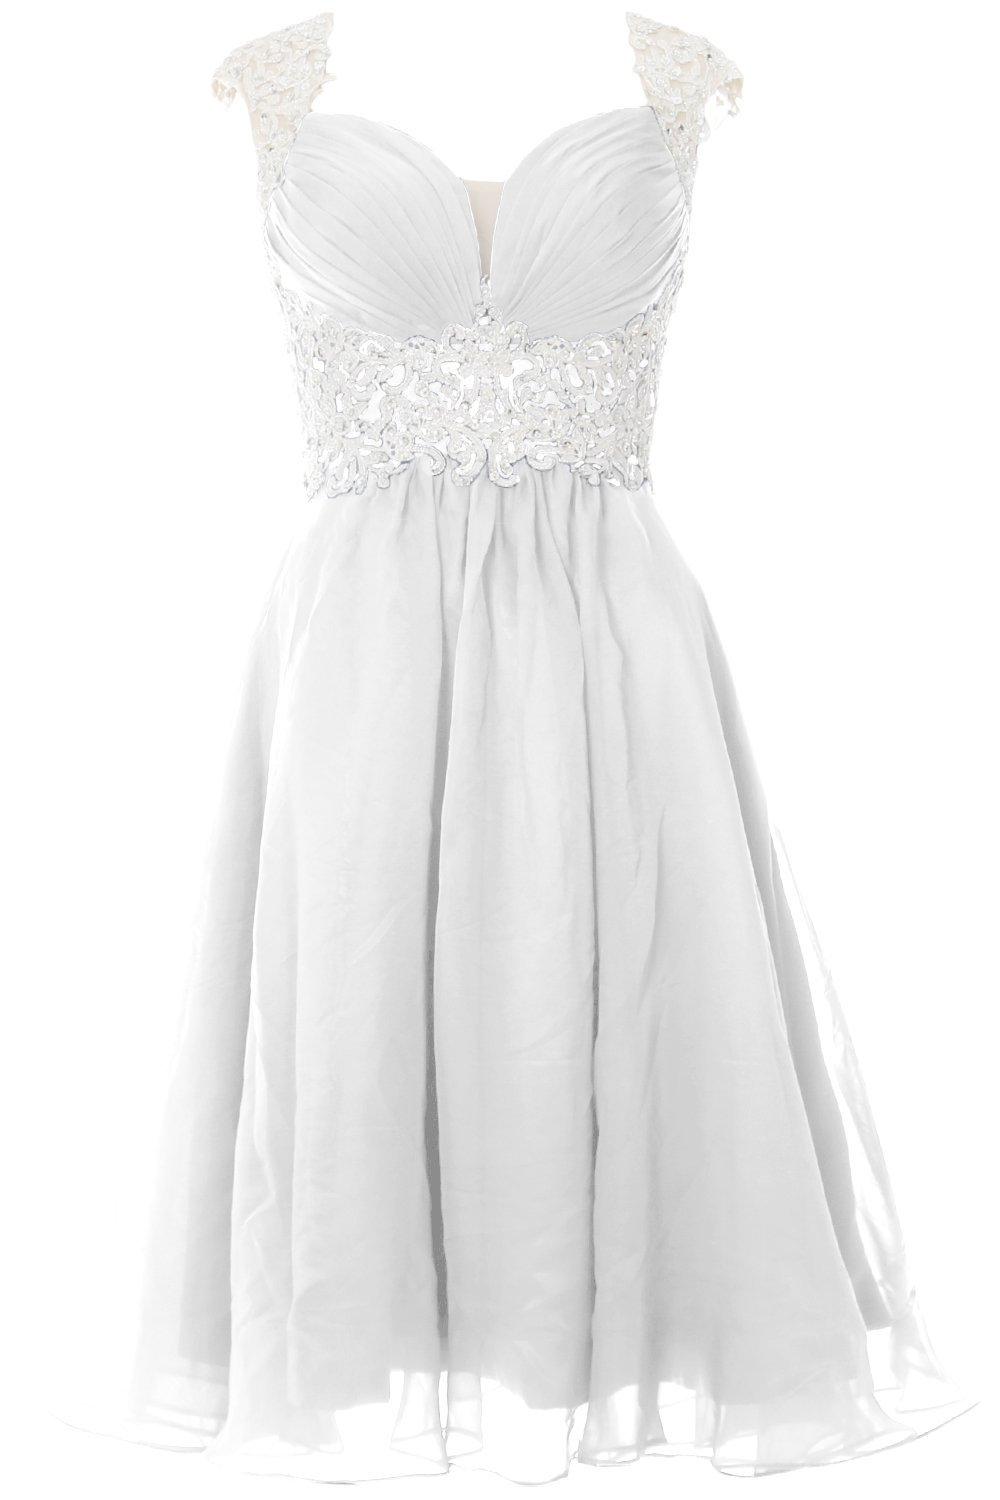 MACloth Women Cap Sleeve Lace Chiffon Short Prom Dress Wedding Party Formal Gown (14, White)